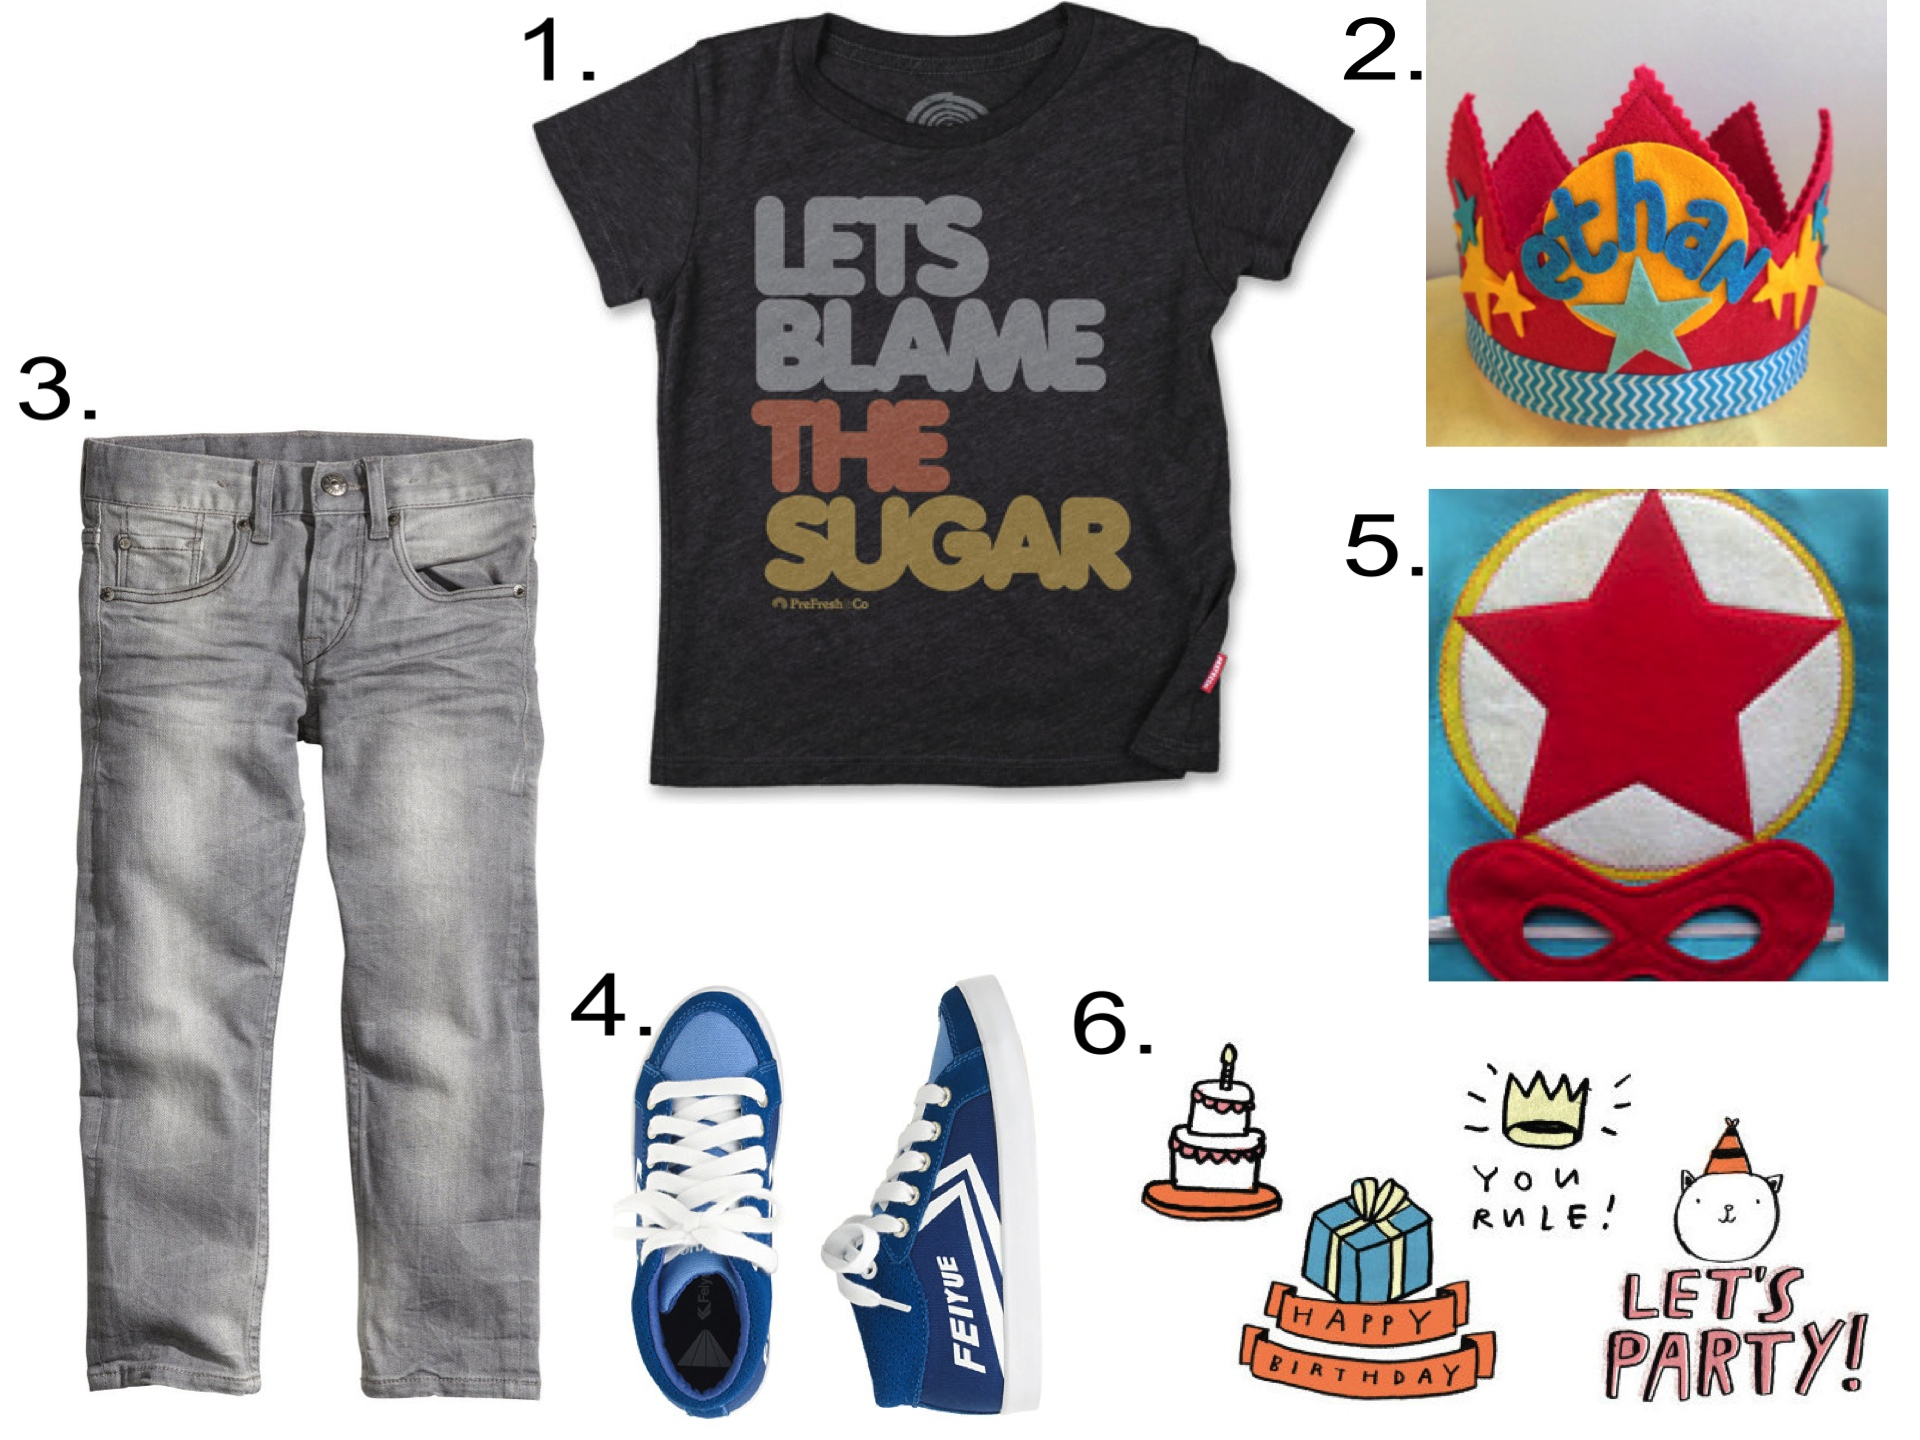 This Birthday Outfit is perfect for your Little Super Hero!  1.  PreFresh BLAME THE SUGAR |2.  Mosey Customized Superhero Star Crown |3.  H&M Slim Jeans |4.  J.Crew FEIYUE DELTA MID SNEAKERS  |5.  Mahalo Child Super Cape with Mask  |6.  Tattly BIRTHDAY SET